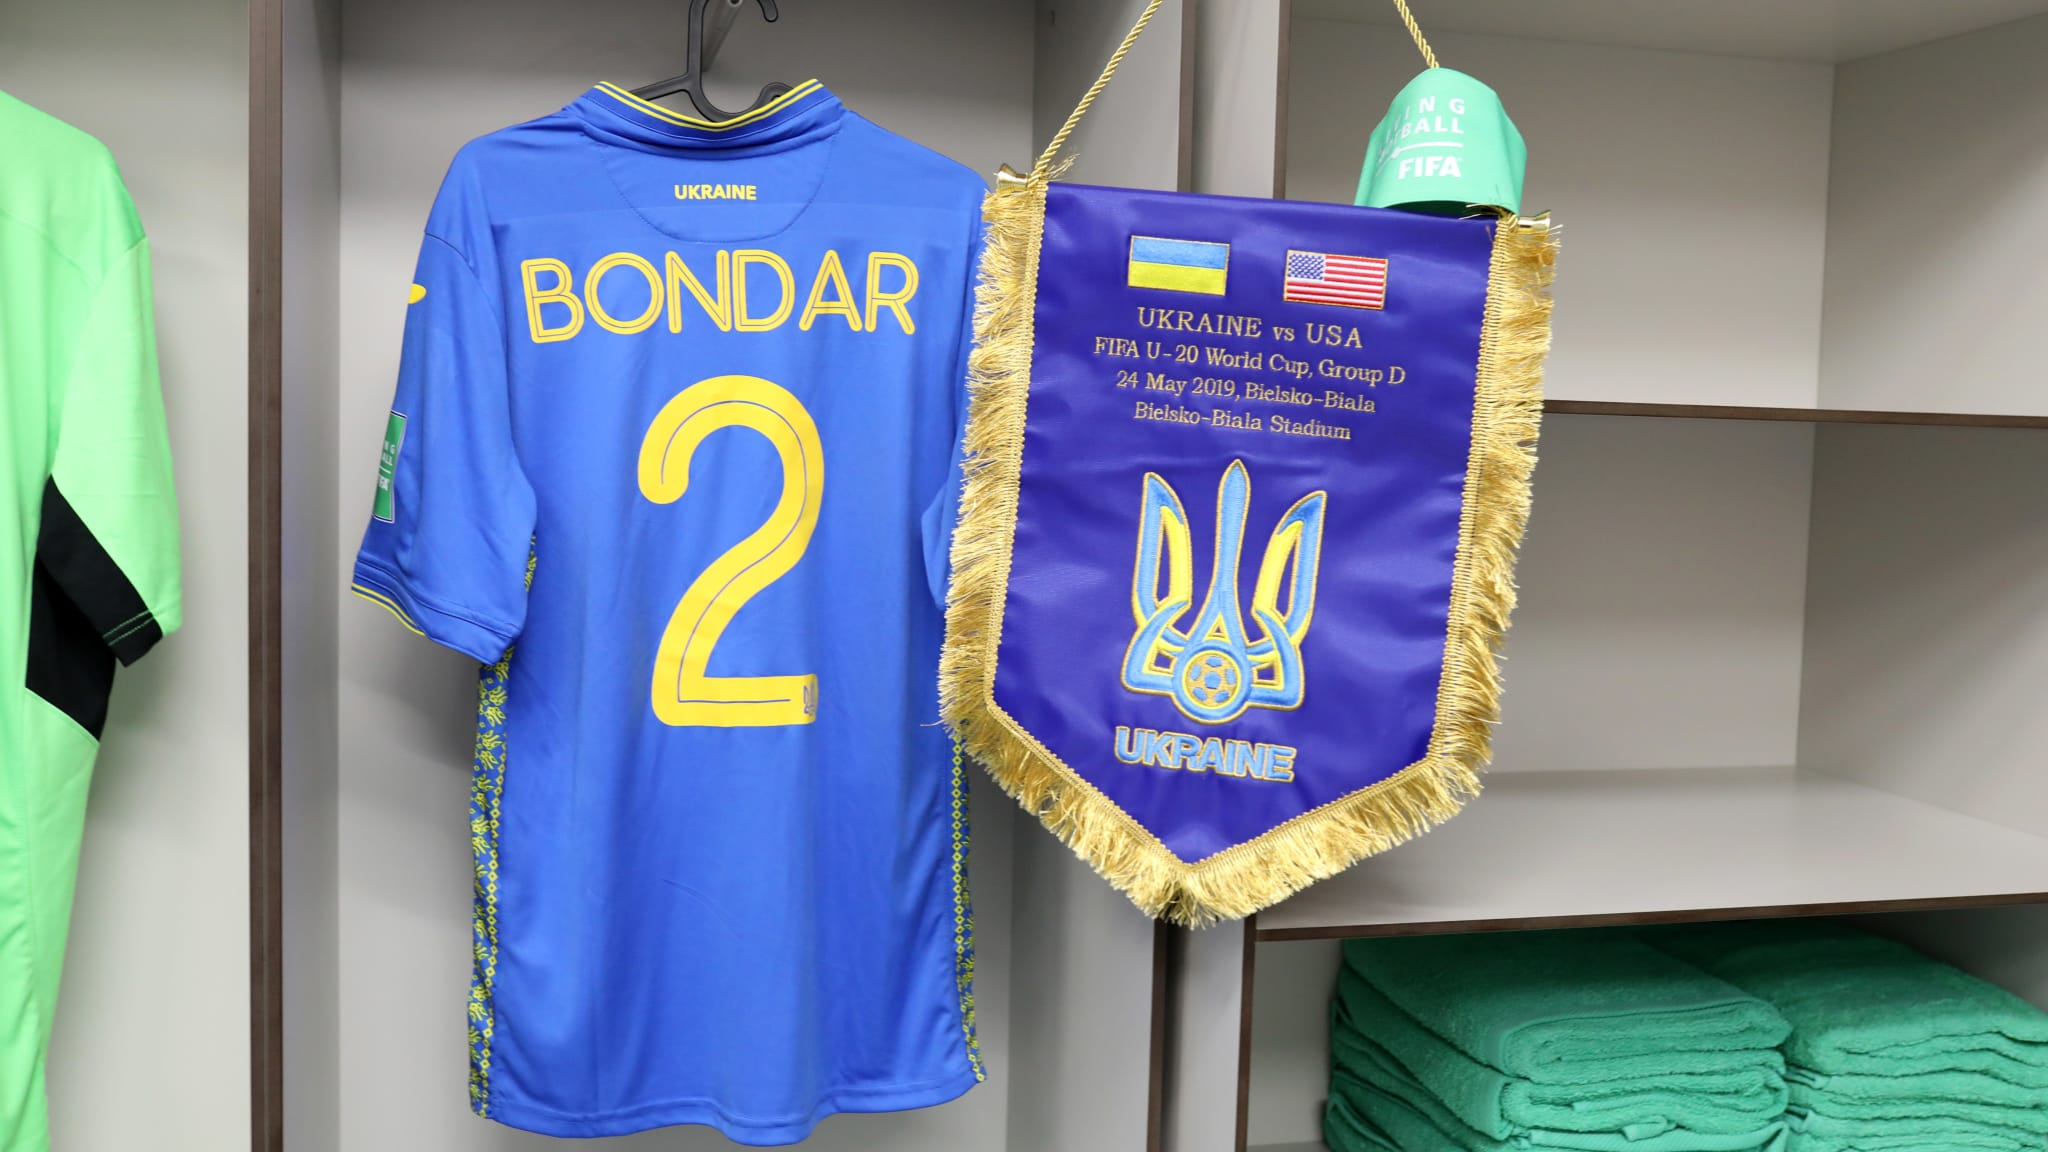 The shirt of Valerii Bondar of Ukraine is seen with a pennant inside the Ukraine dressing room